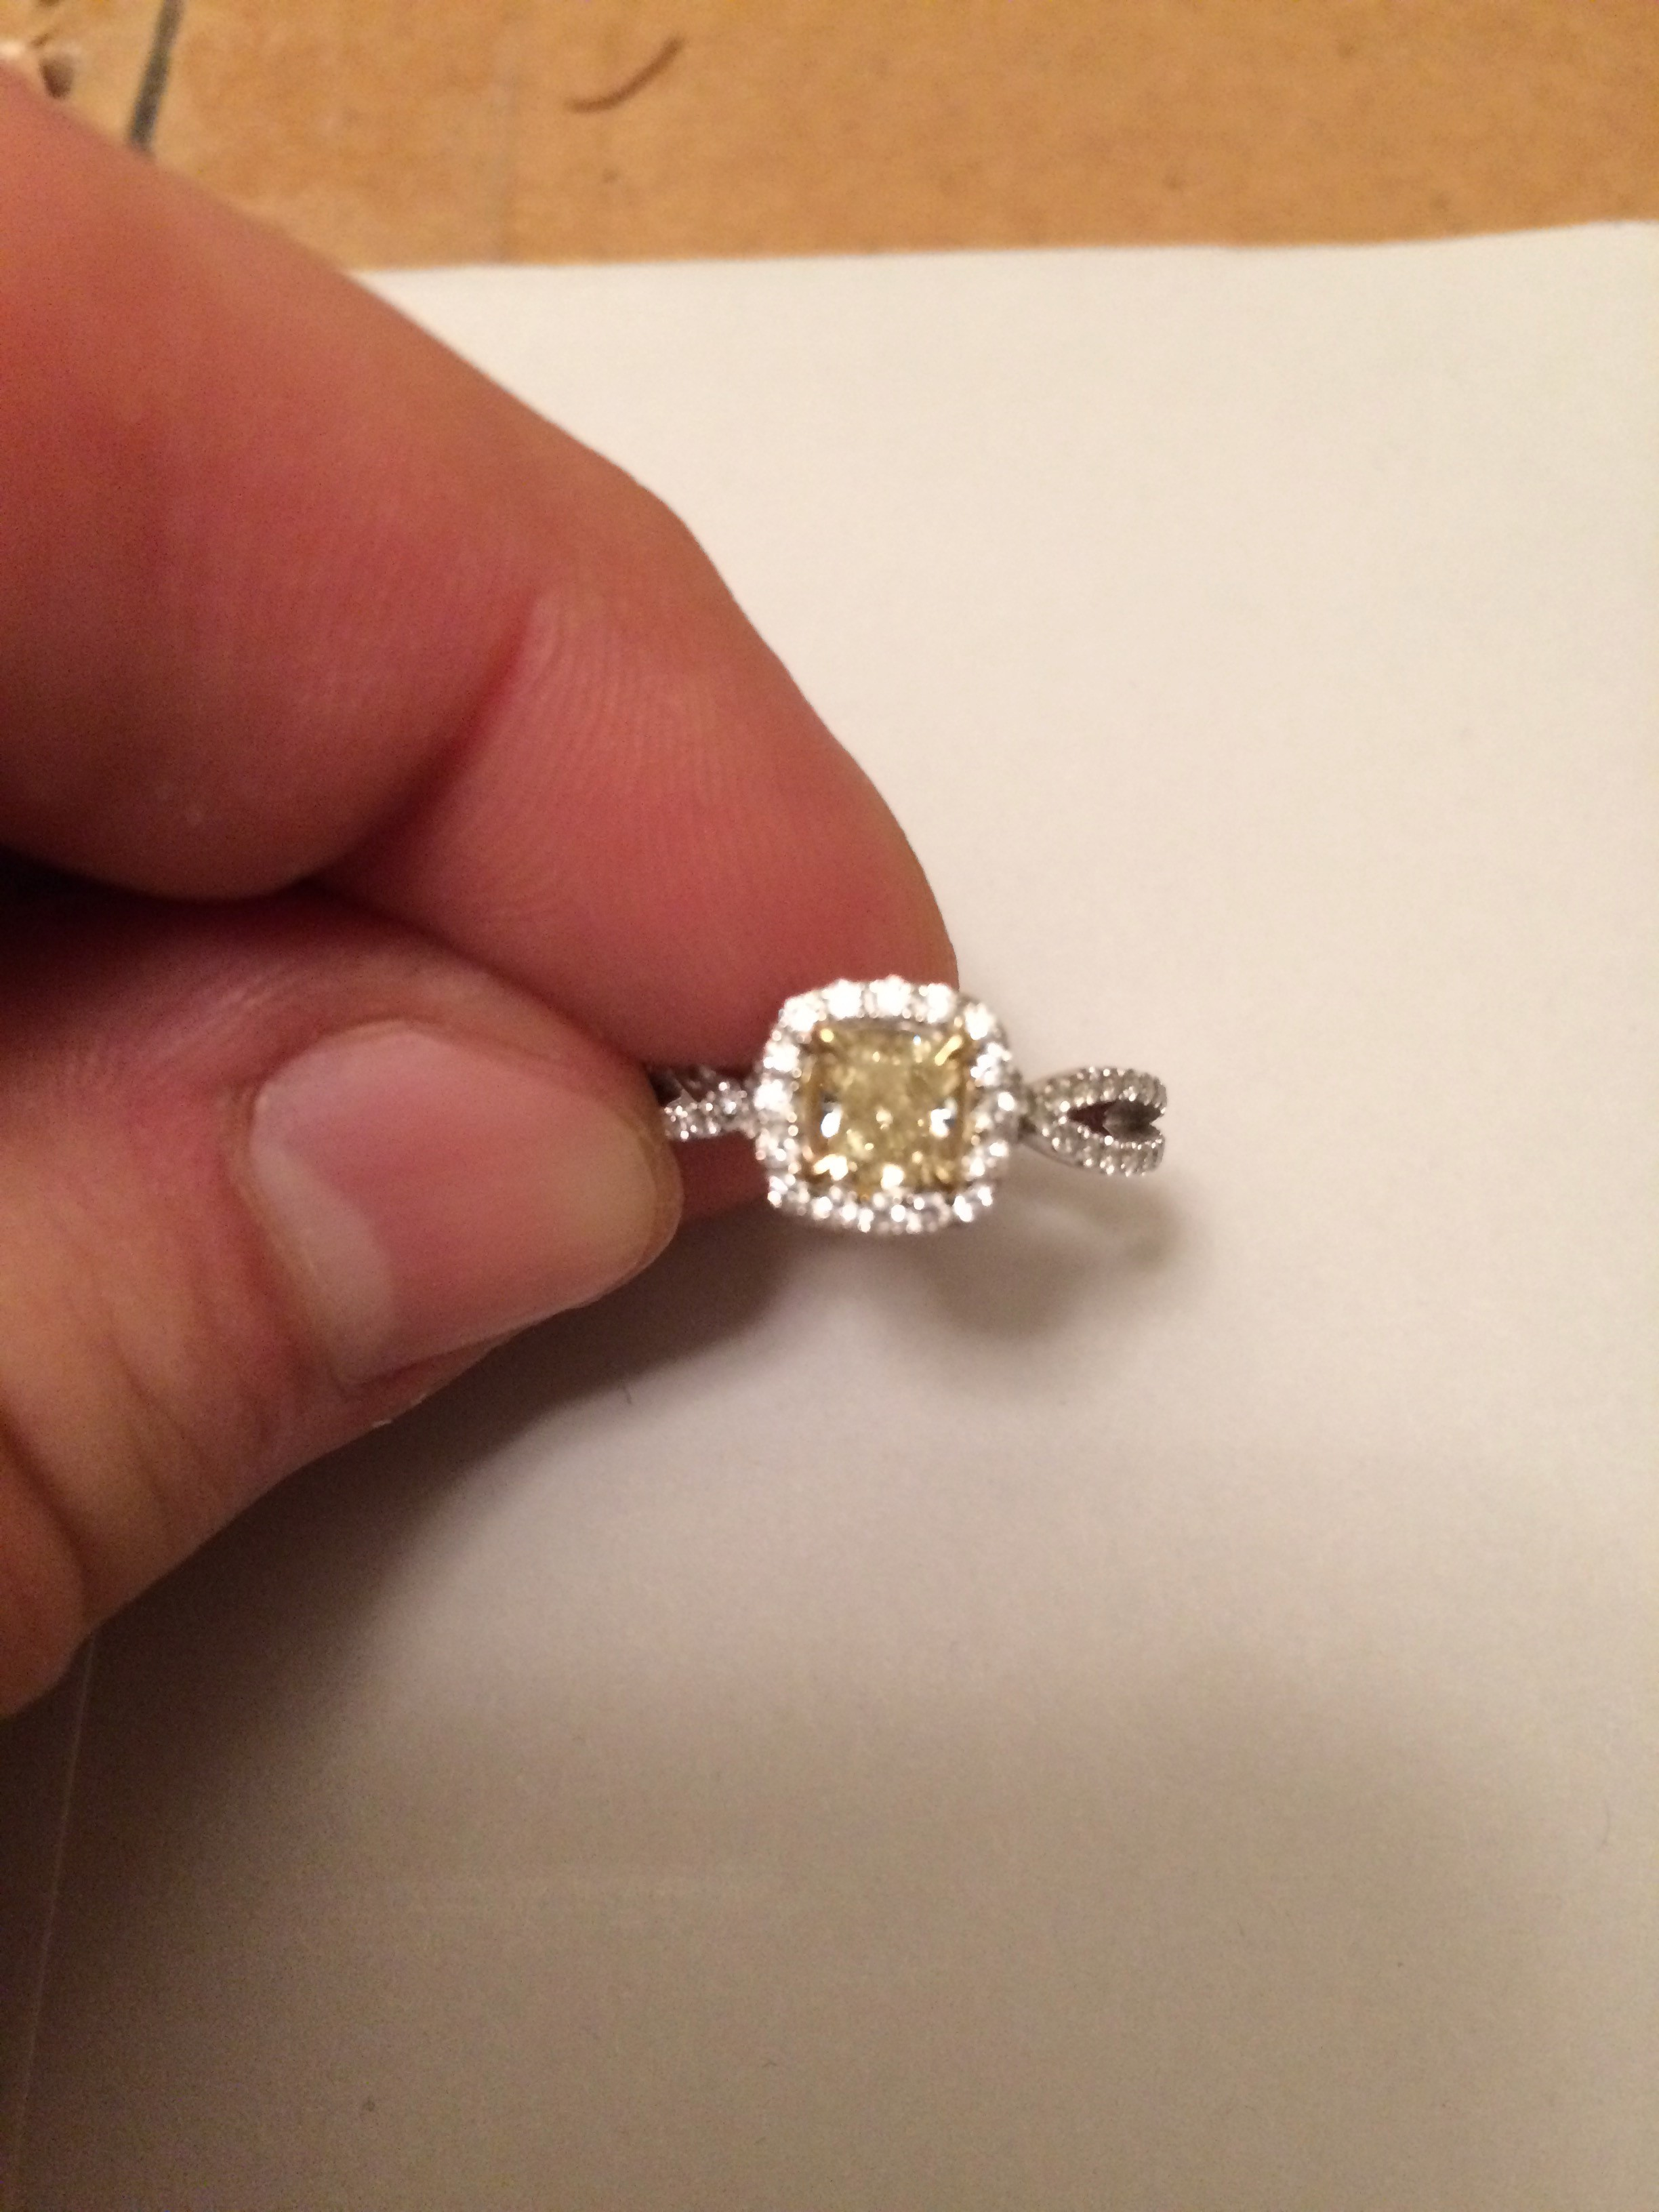 Yellow Diamond (0.51 carats) + 78 clear diamonds (0.5 carats, total)